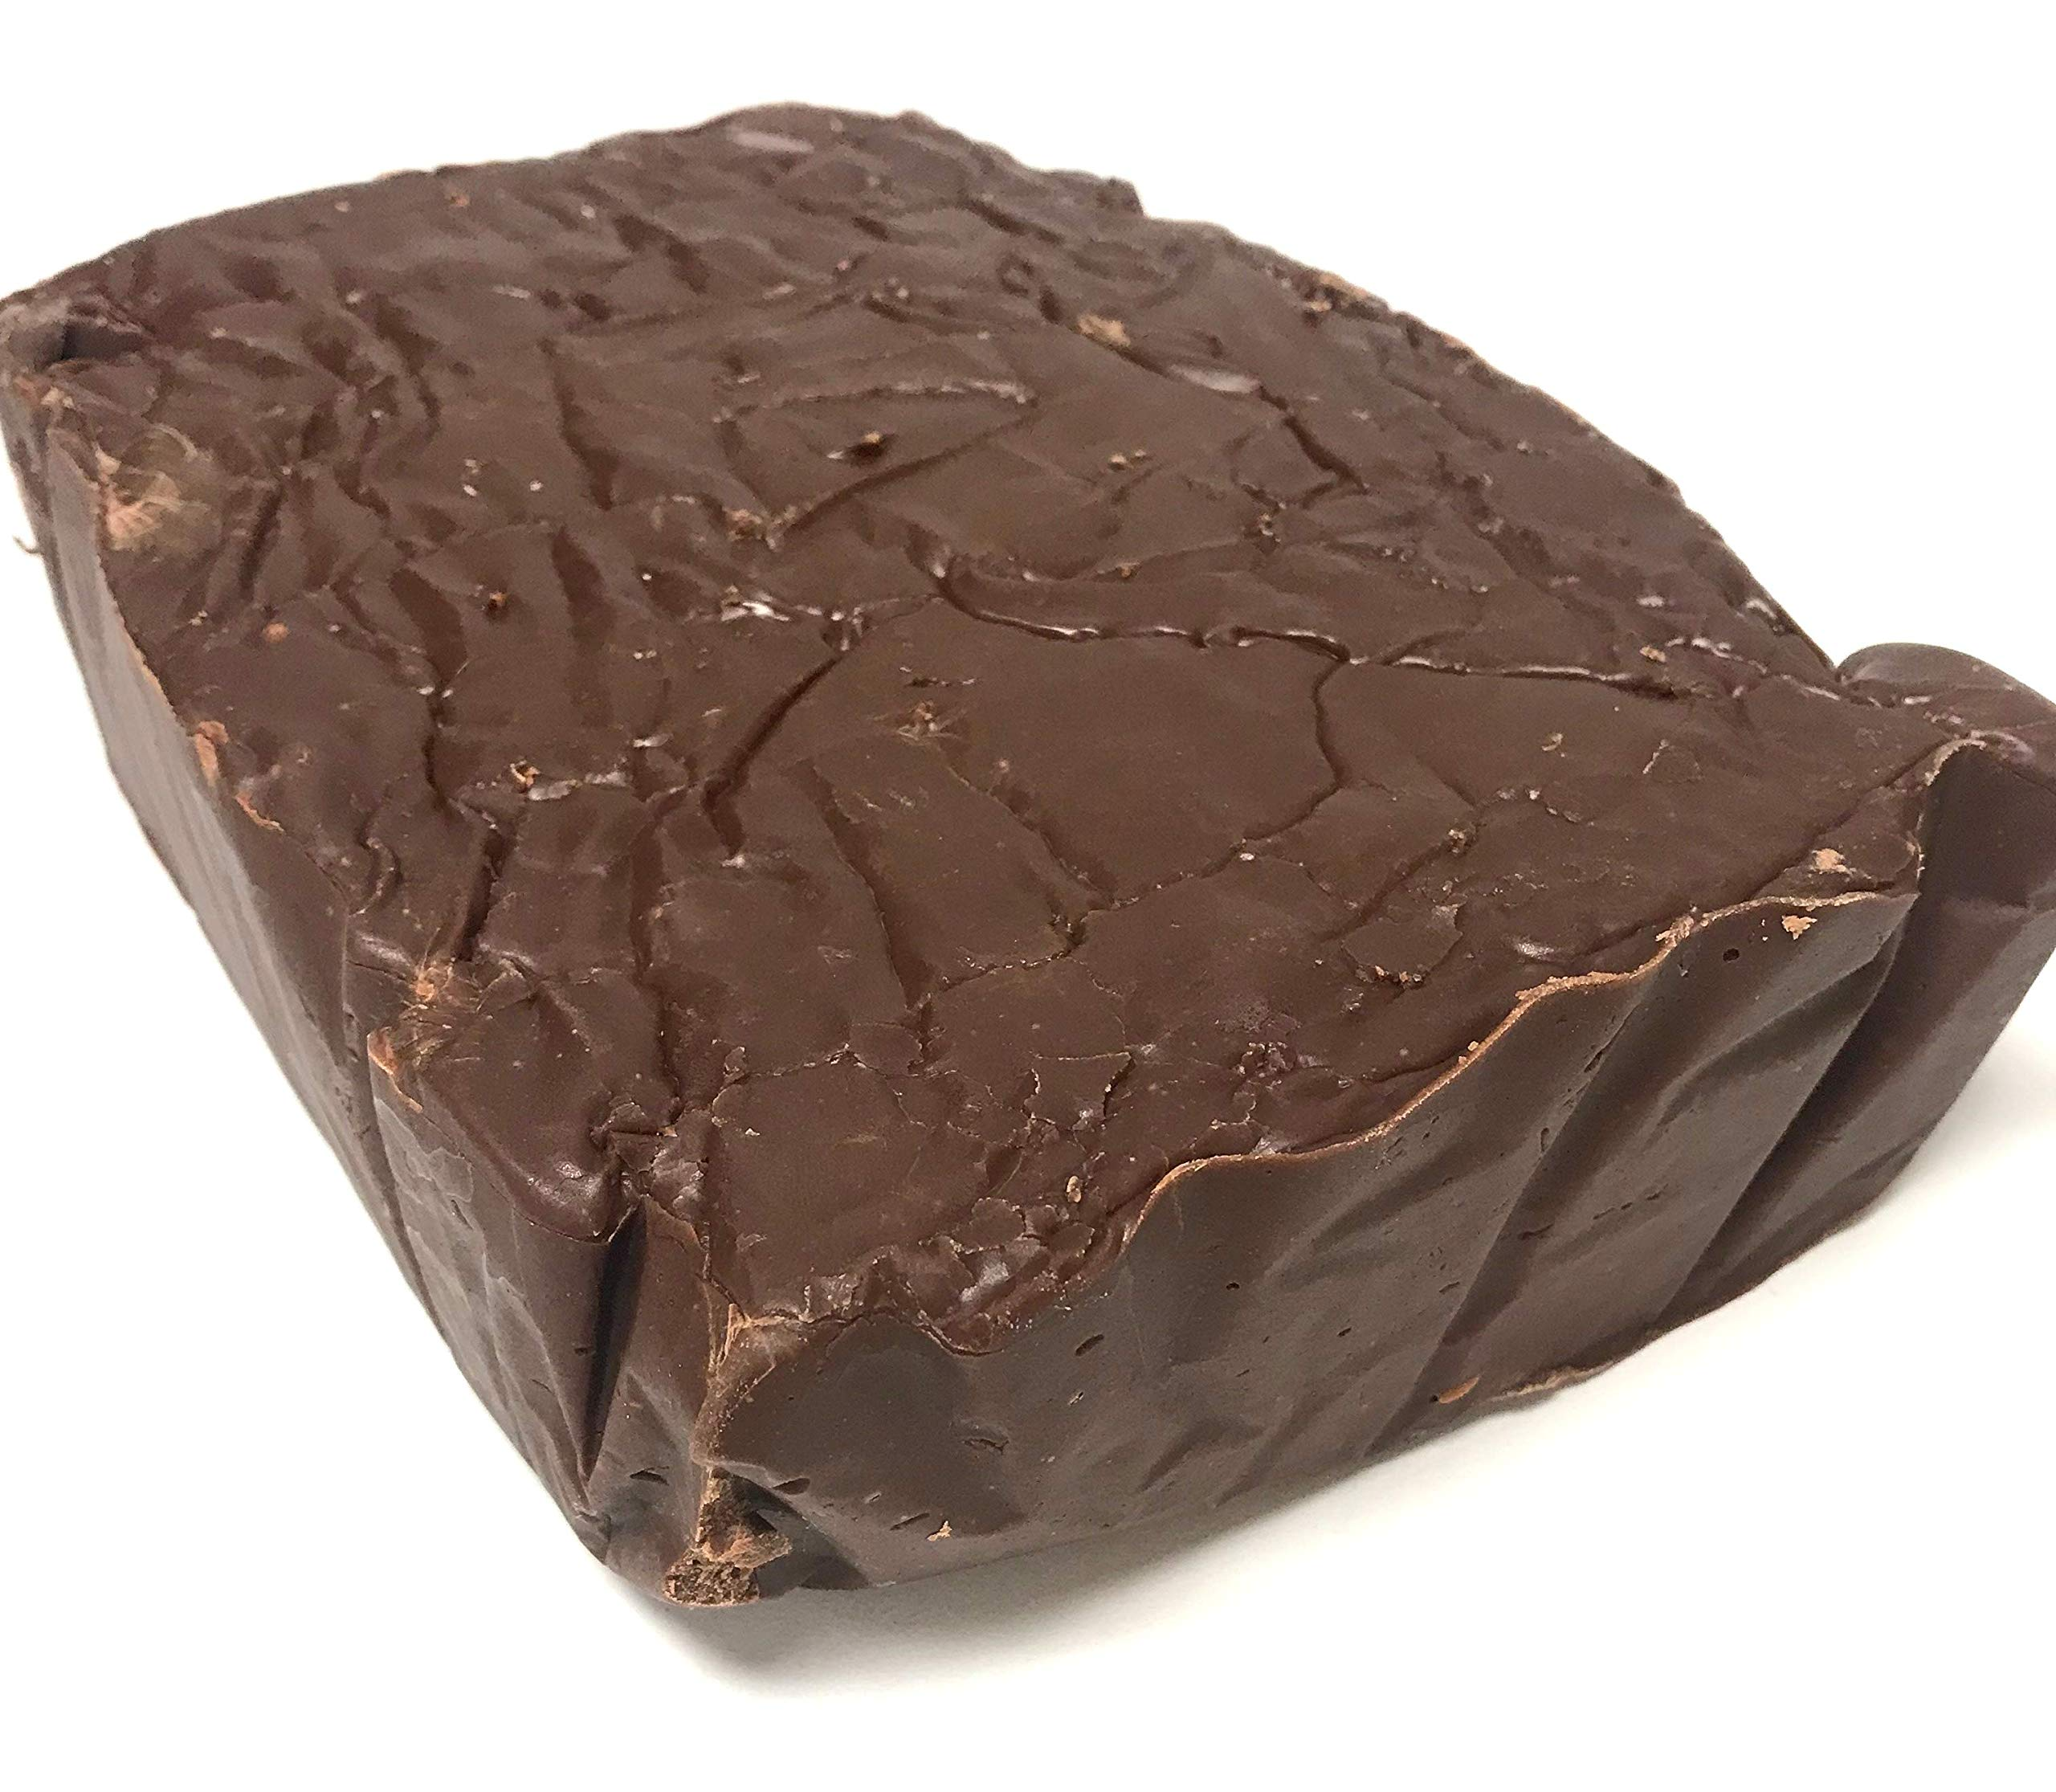 Handmade Fudge 5 Lb. Loaf Dark Chocolate